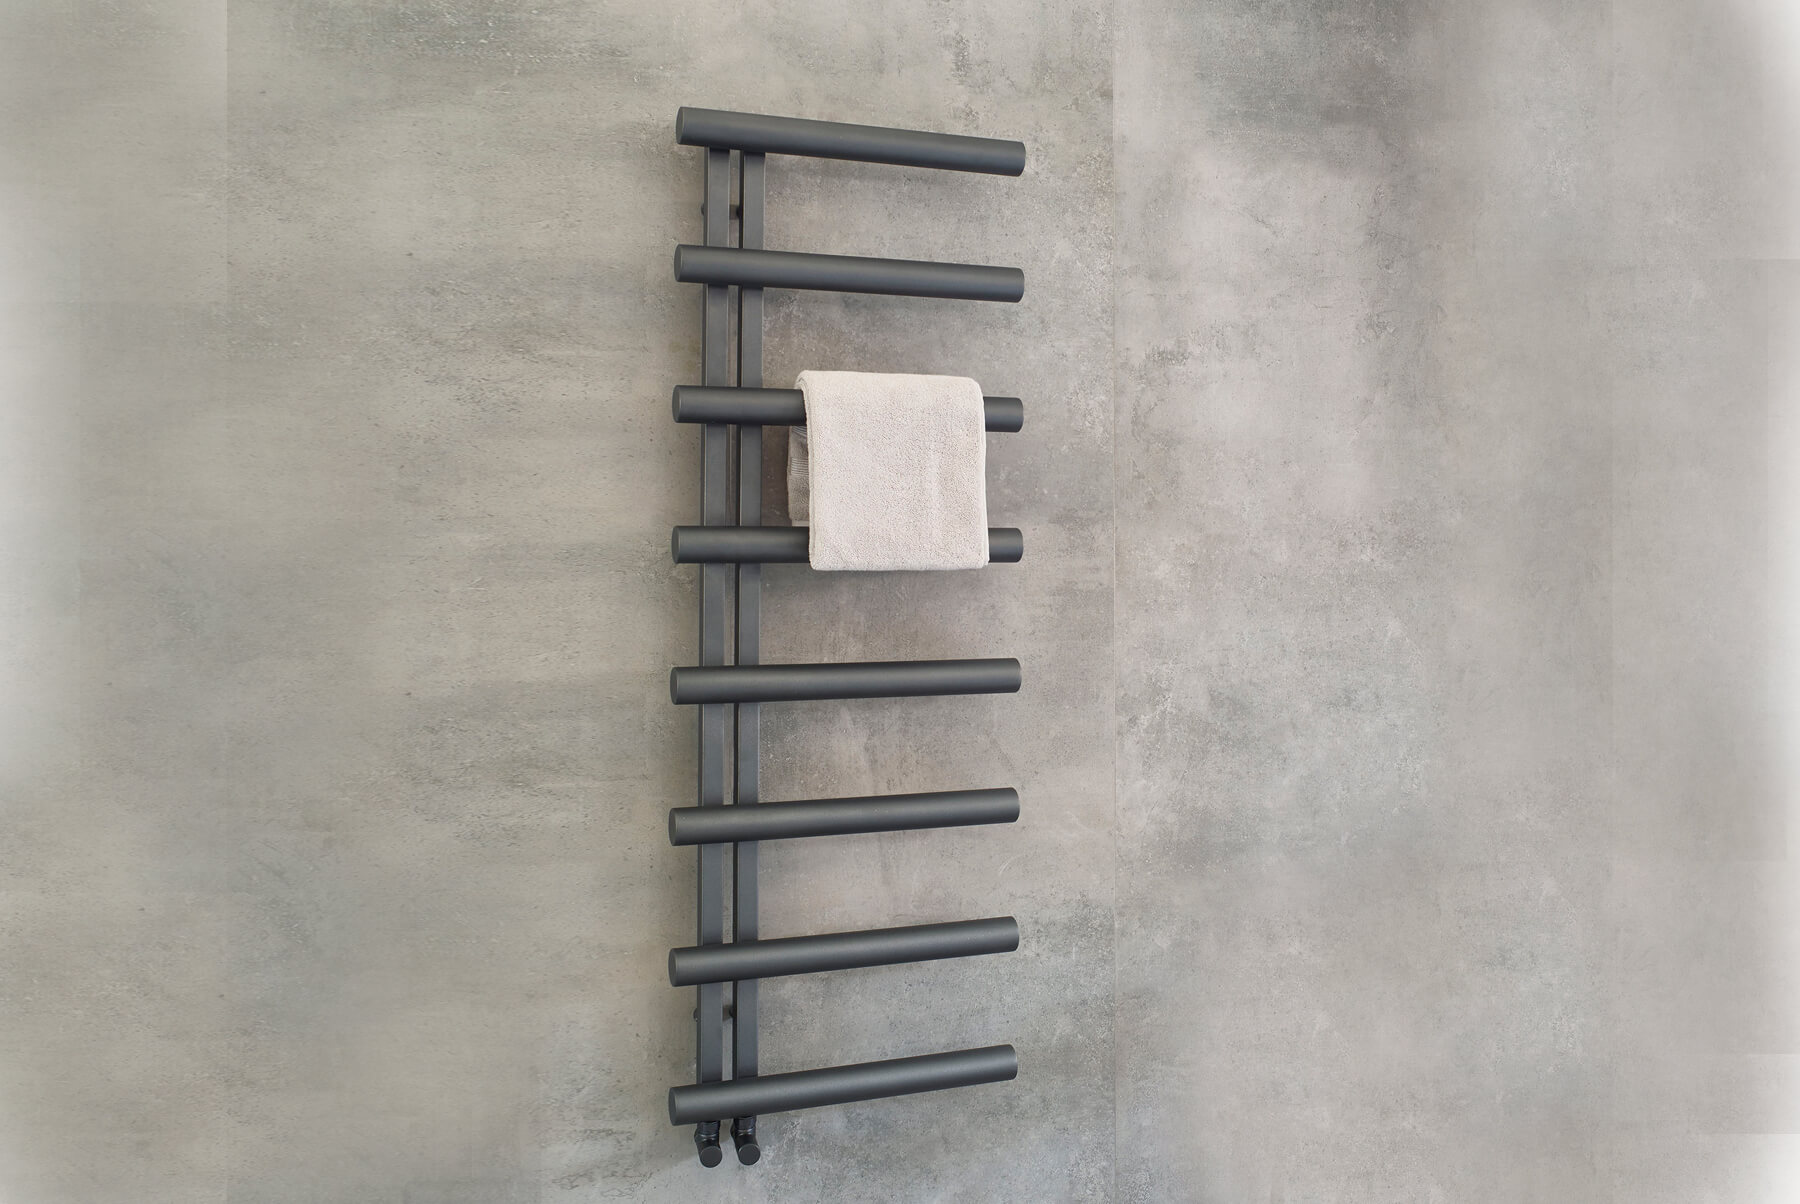 Radiators-&-Towel-Warmers-Bisque-Chime-Inset-41800x1204